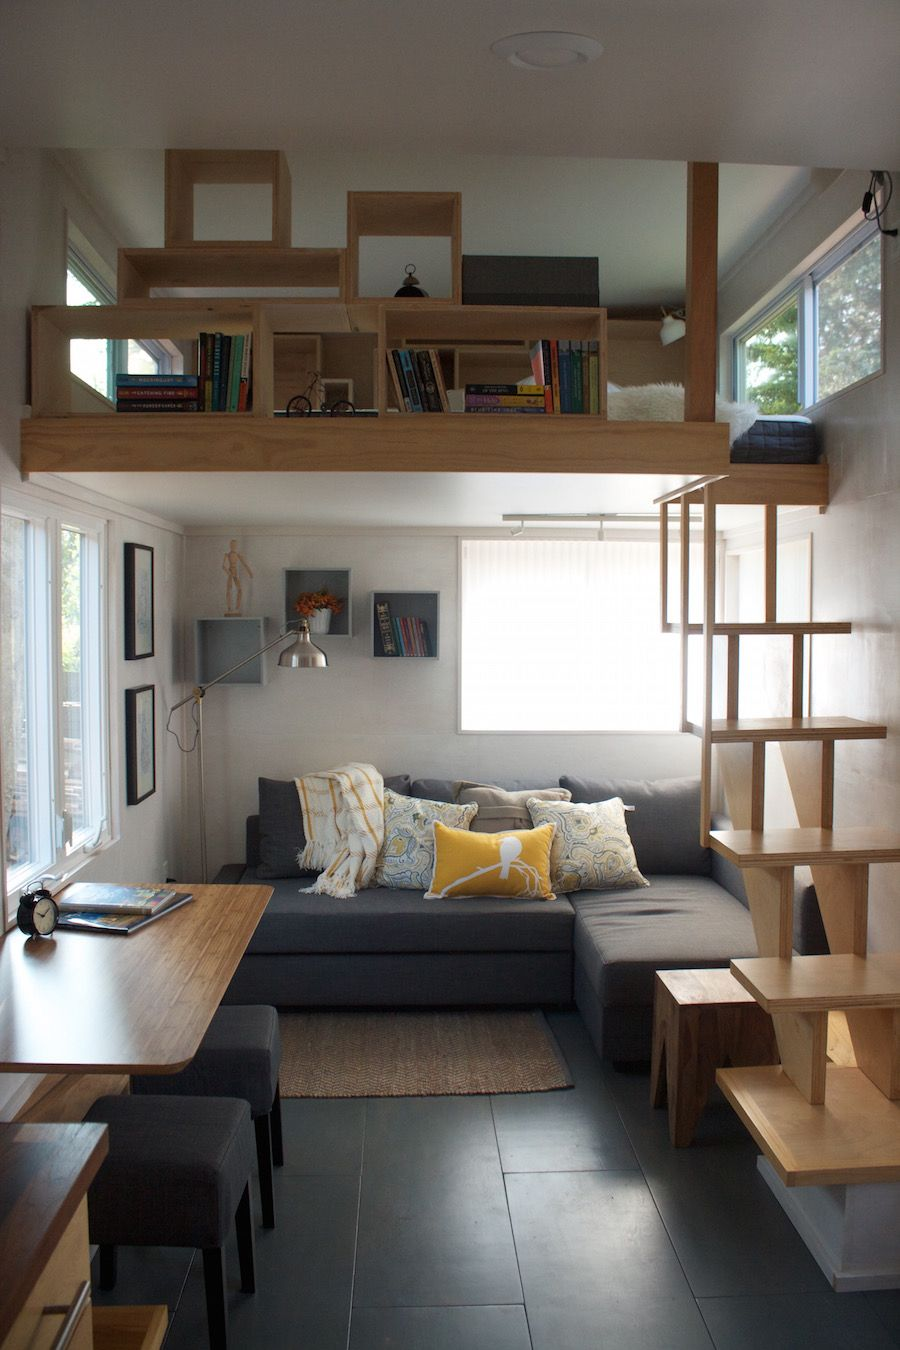 Liberation Tiny House | When I live somewhere besides a dorm